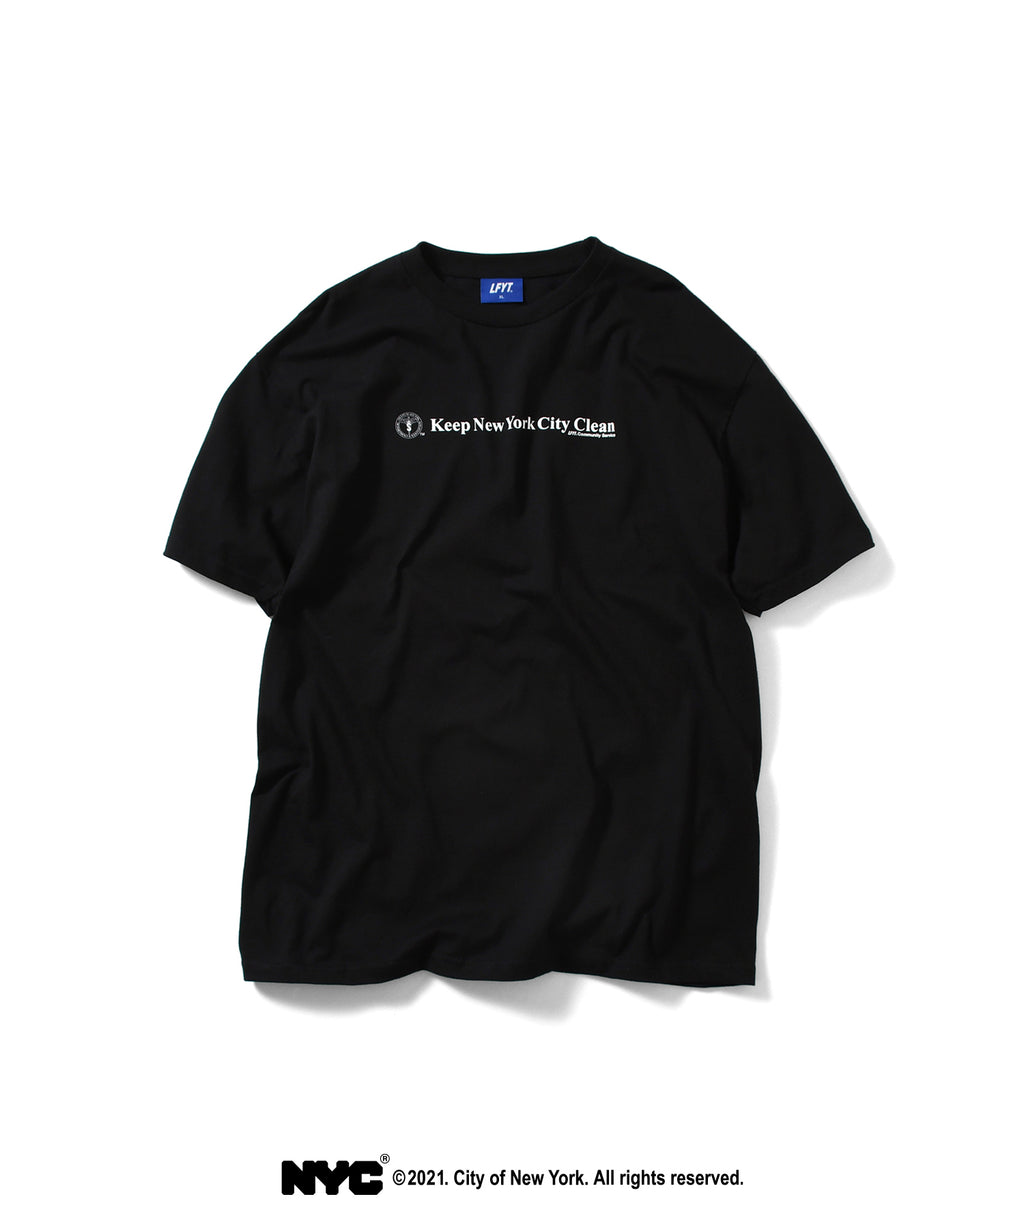 LFYT X DSNY COMMUNITY SERVICES TEE LS210103 BLACK